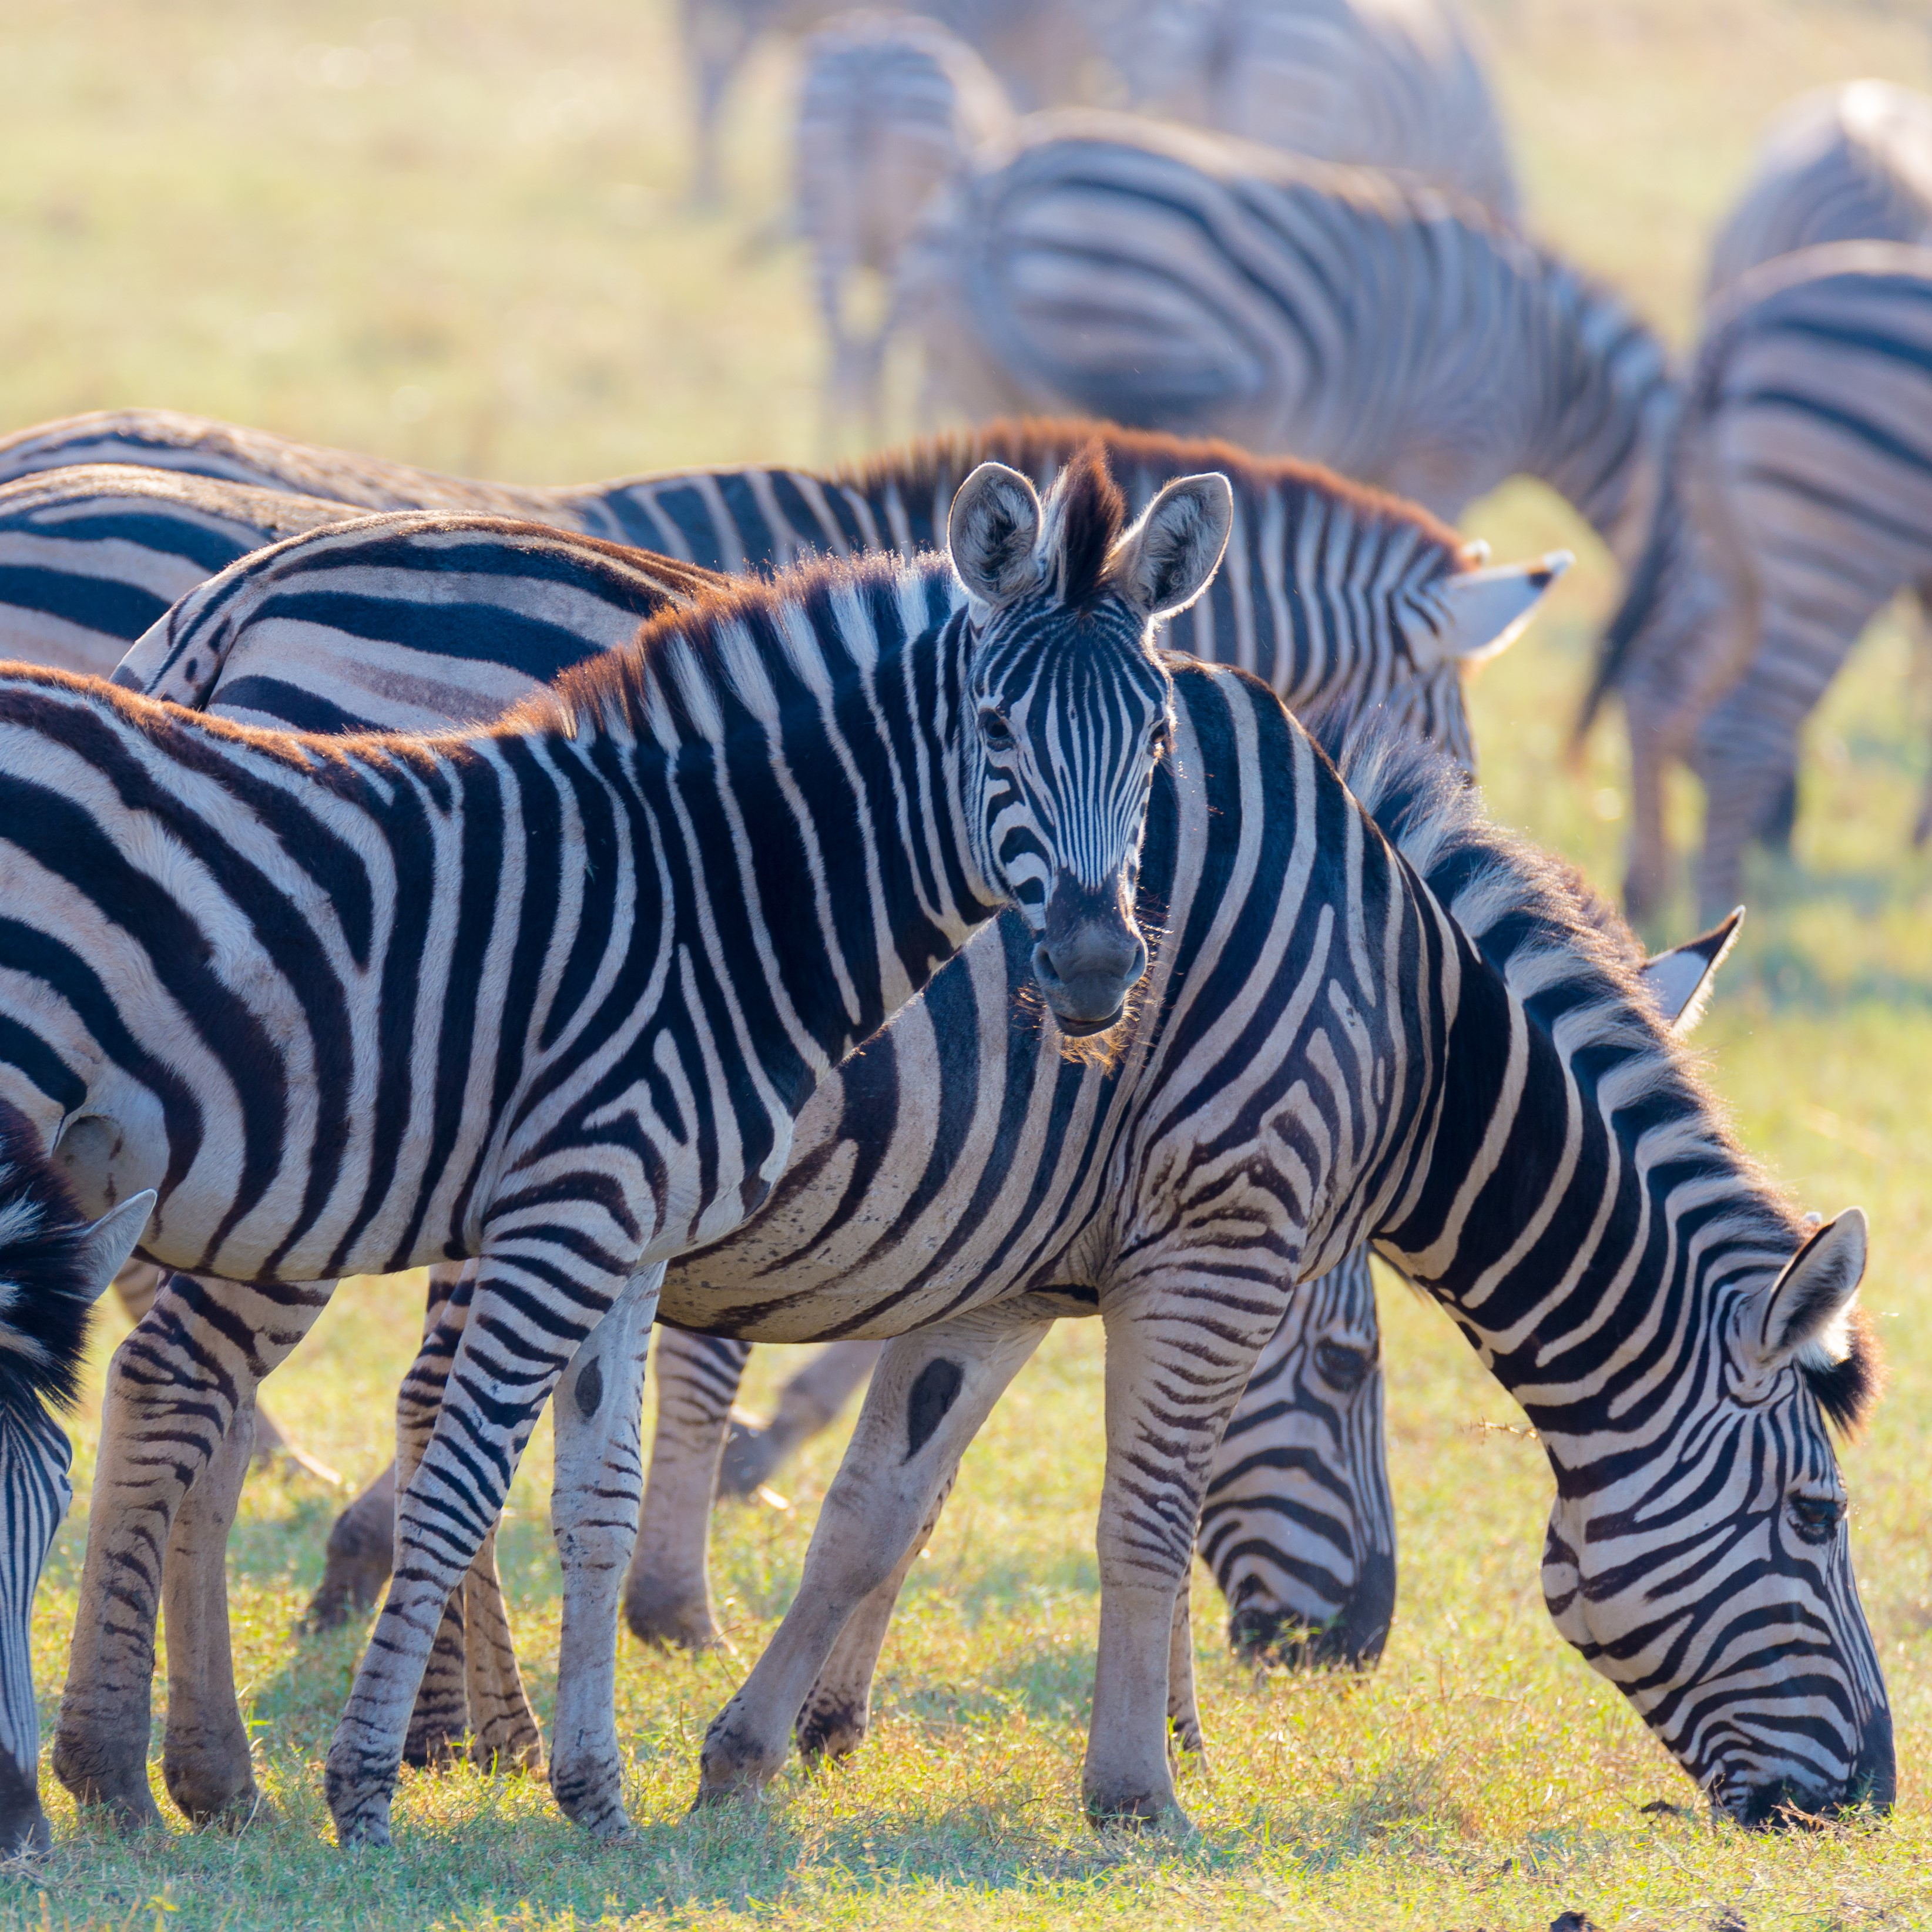 herd of zebras in Kenya National Park